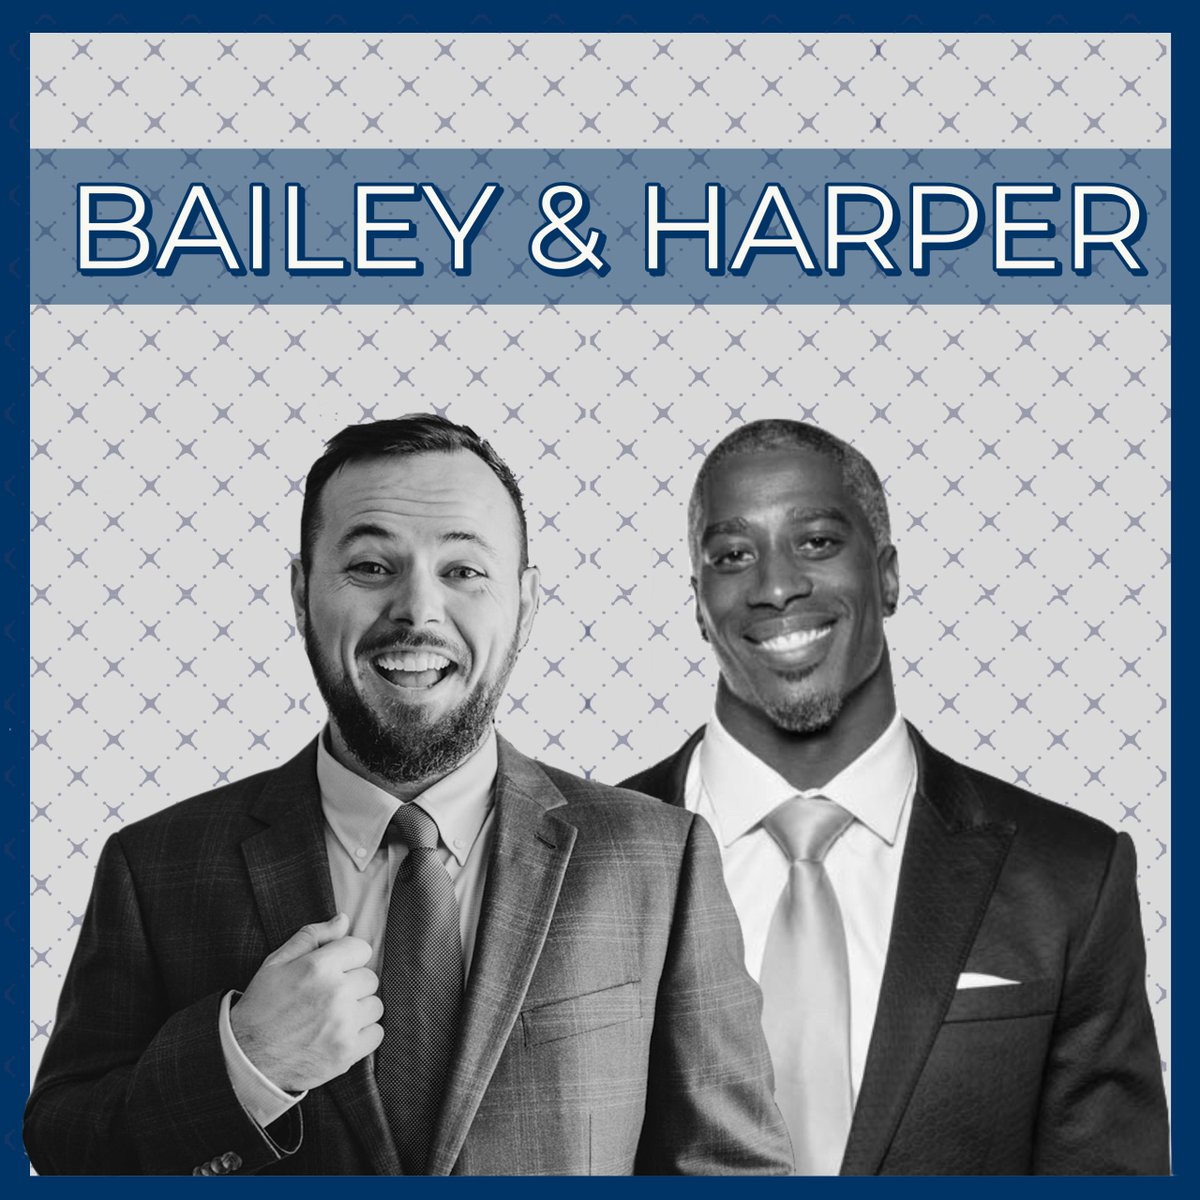 Episode 7 - The Black Panther, the NBA, and Kenosha.  @Harp41 and I also welcomed @JulianCouncil into the operation.   Spotify: https://t.co/C6CiJ1mCN0 https://t.co/qf42LC80z4